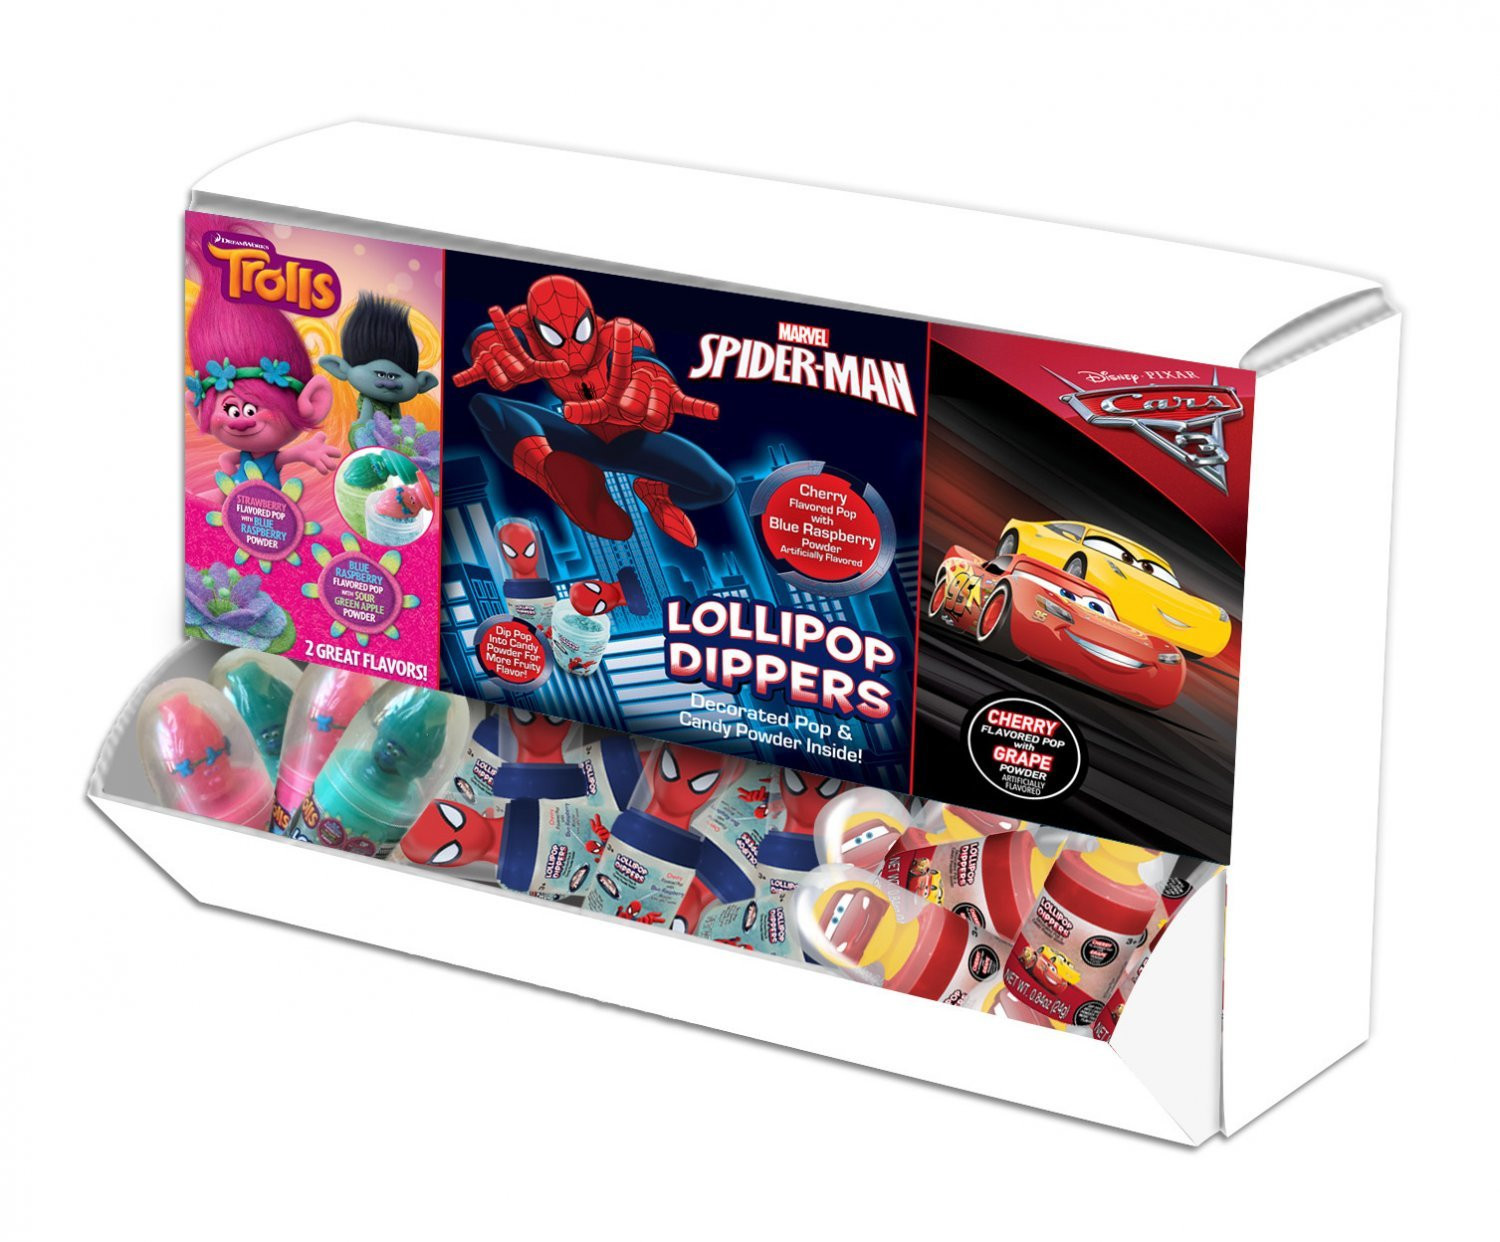 Disney Licensed Lollipop Dipper Power Panel - Trolls, Spider-Man & Cars 3